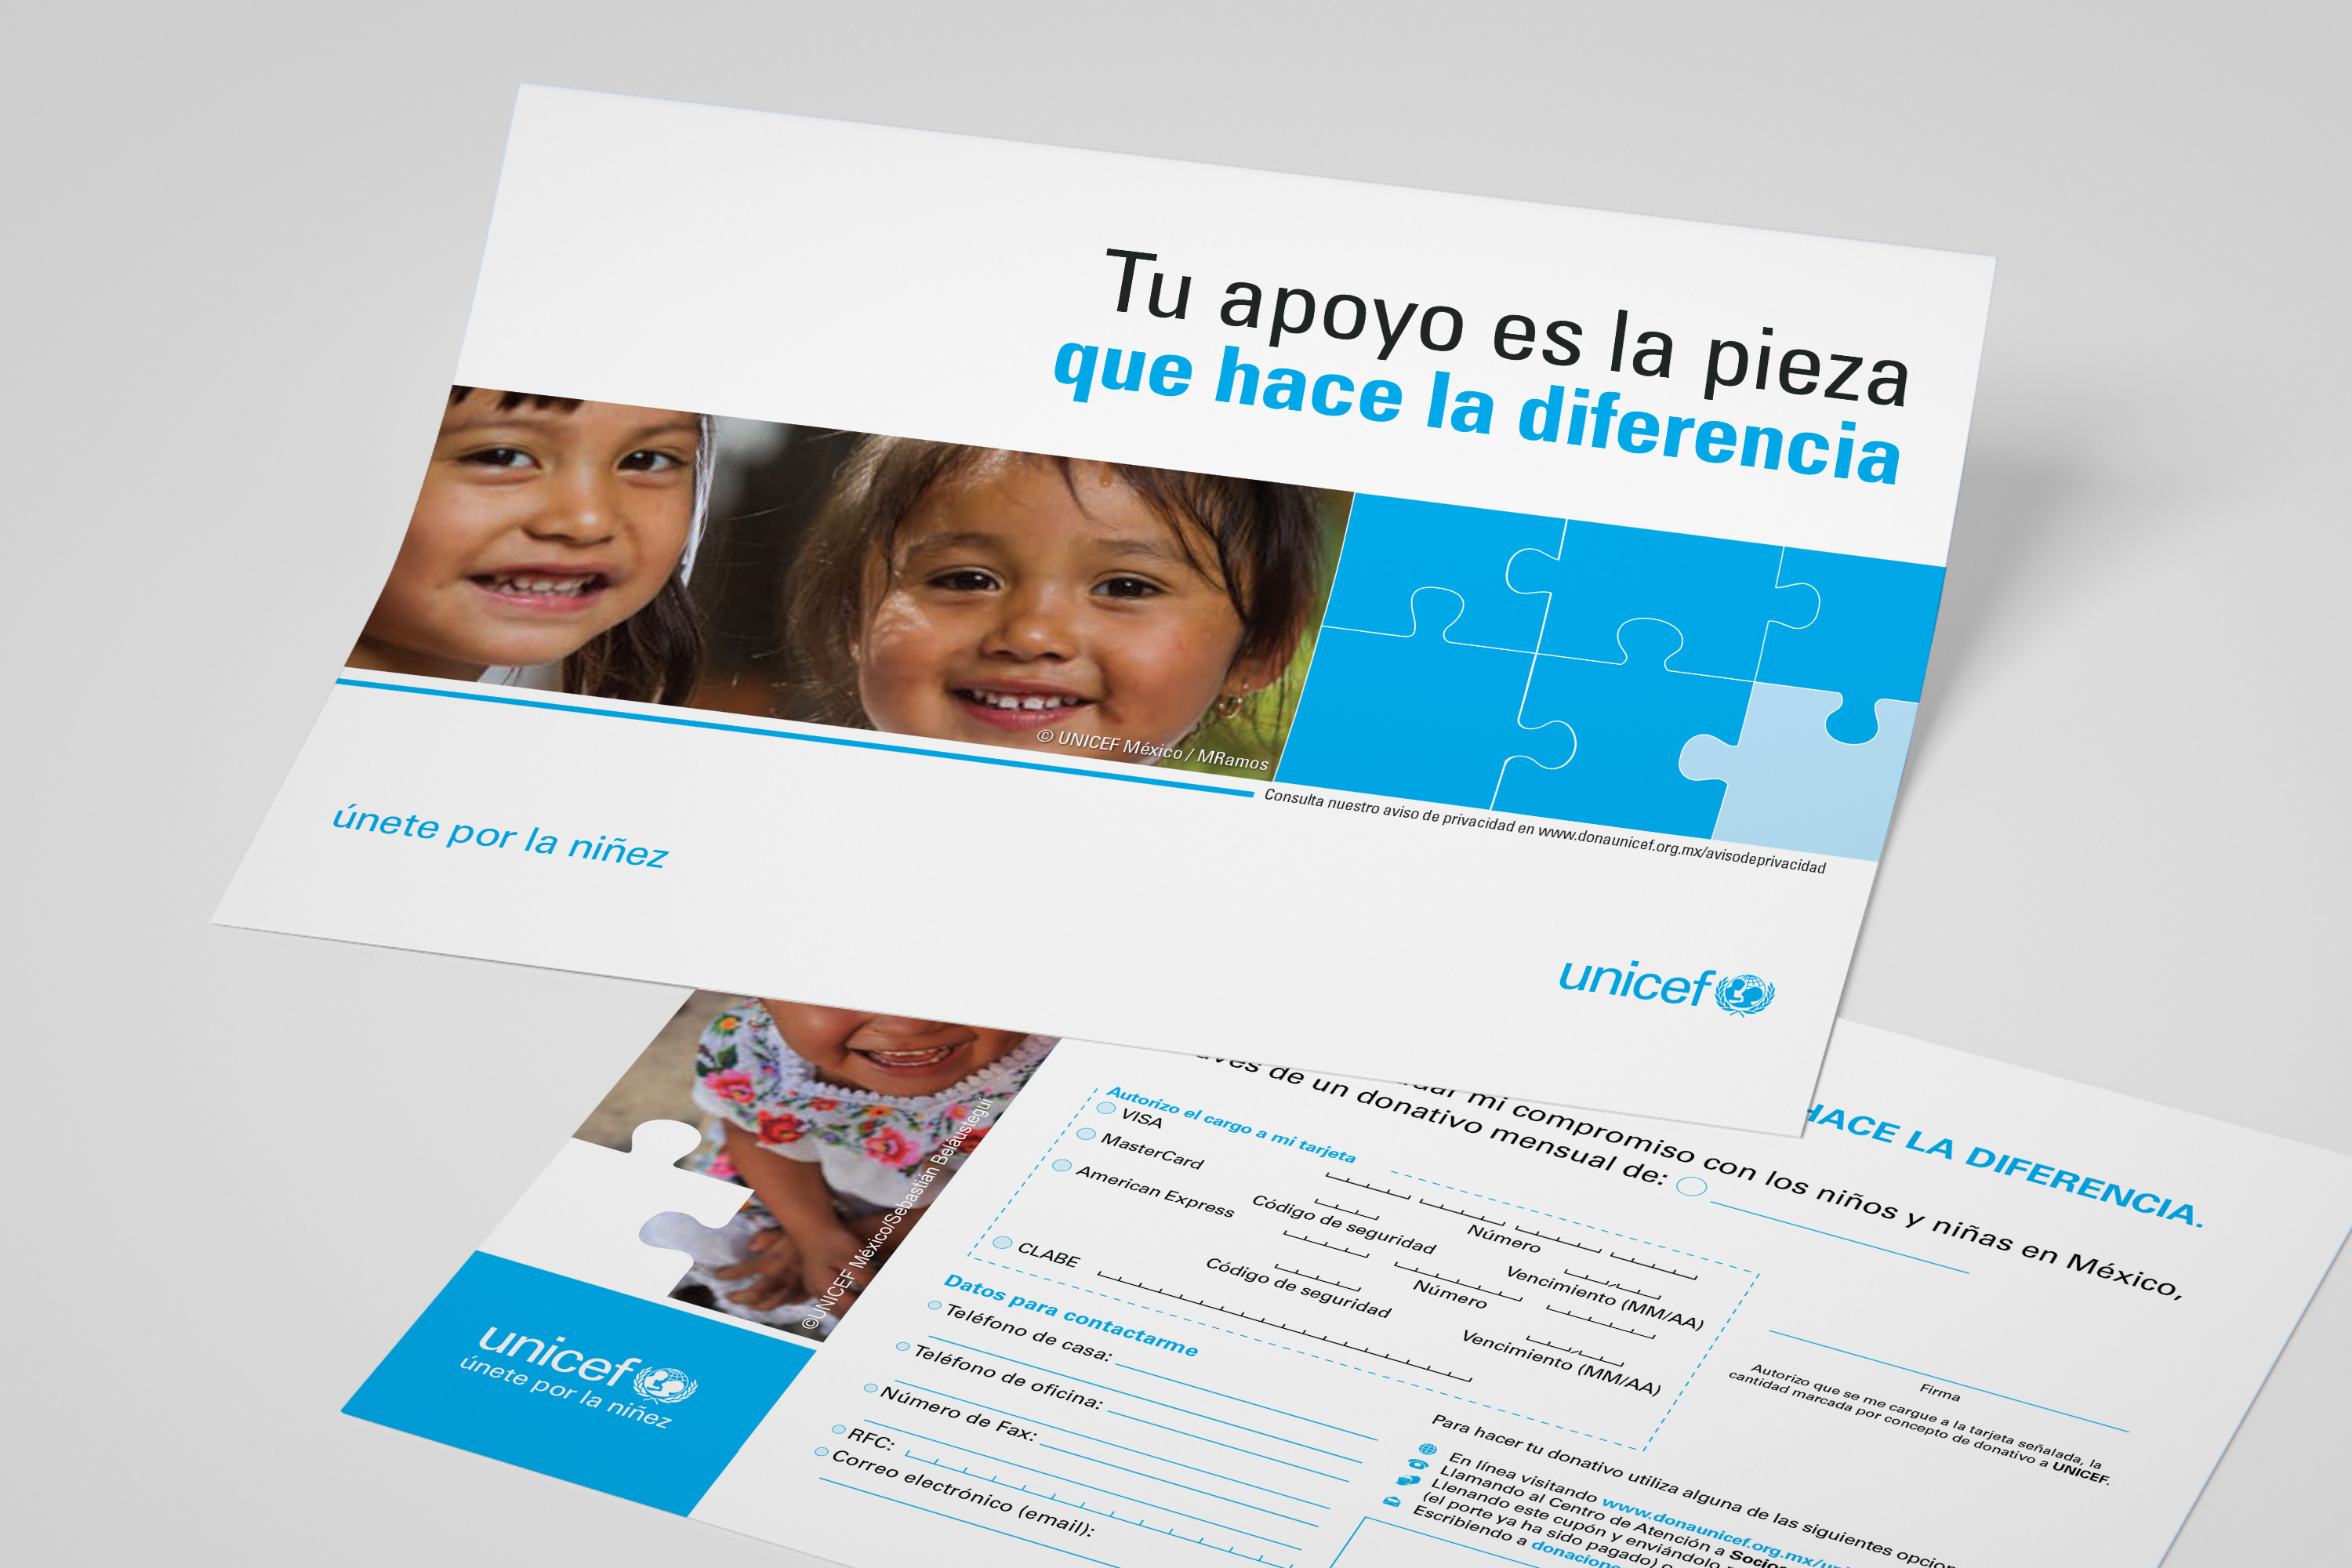 UNICEF-2-Informe-Anual-06